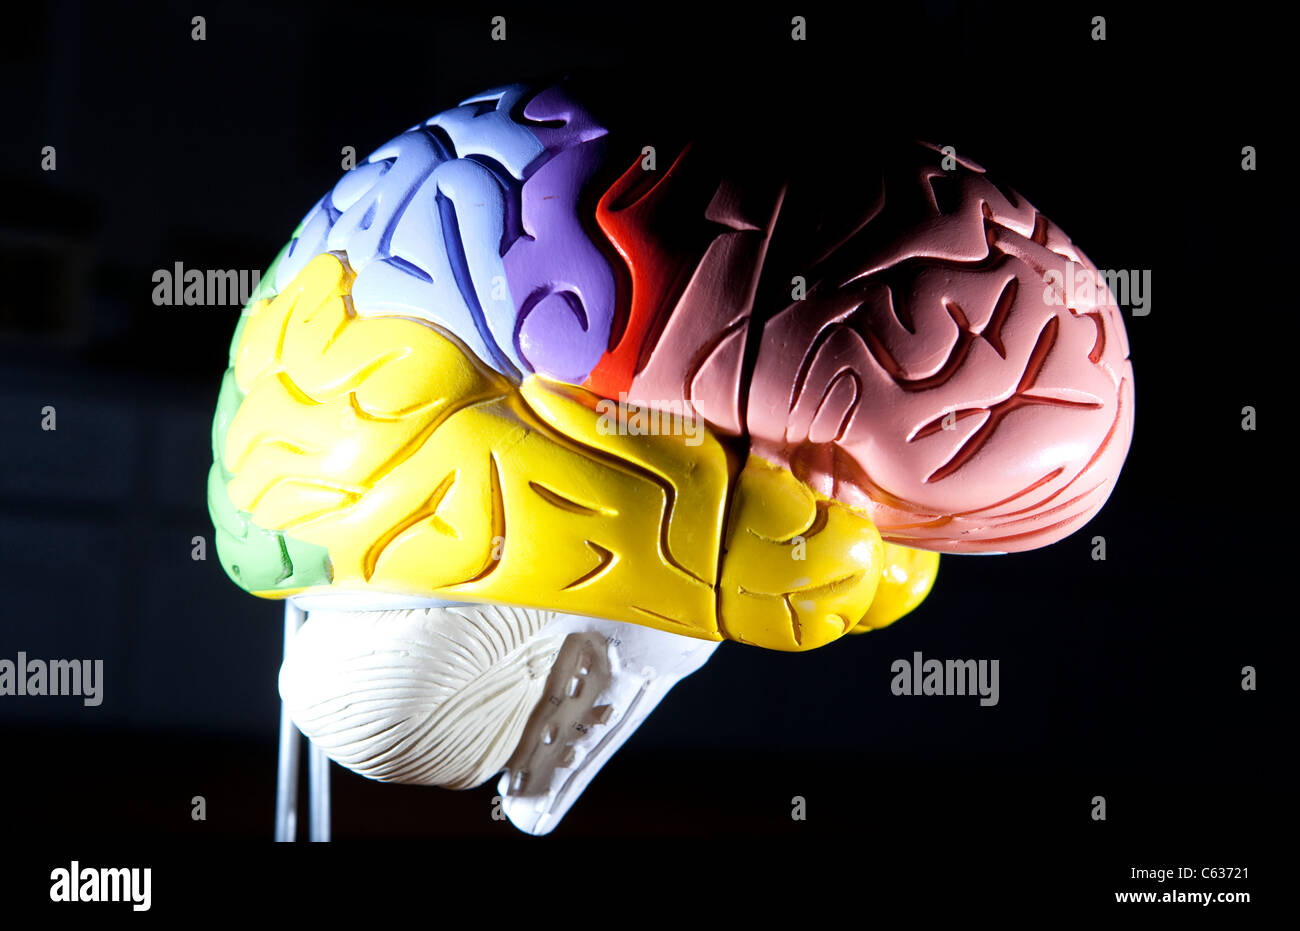 A Plastic Model Of The Human Brain A Teaching Aid For Medical